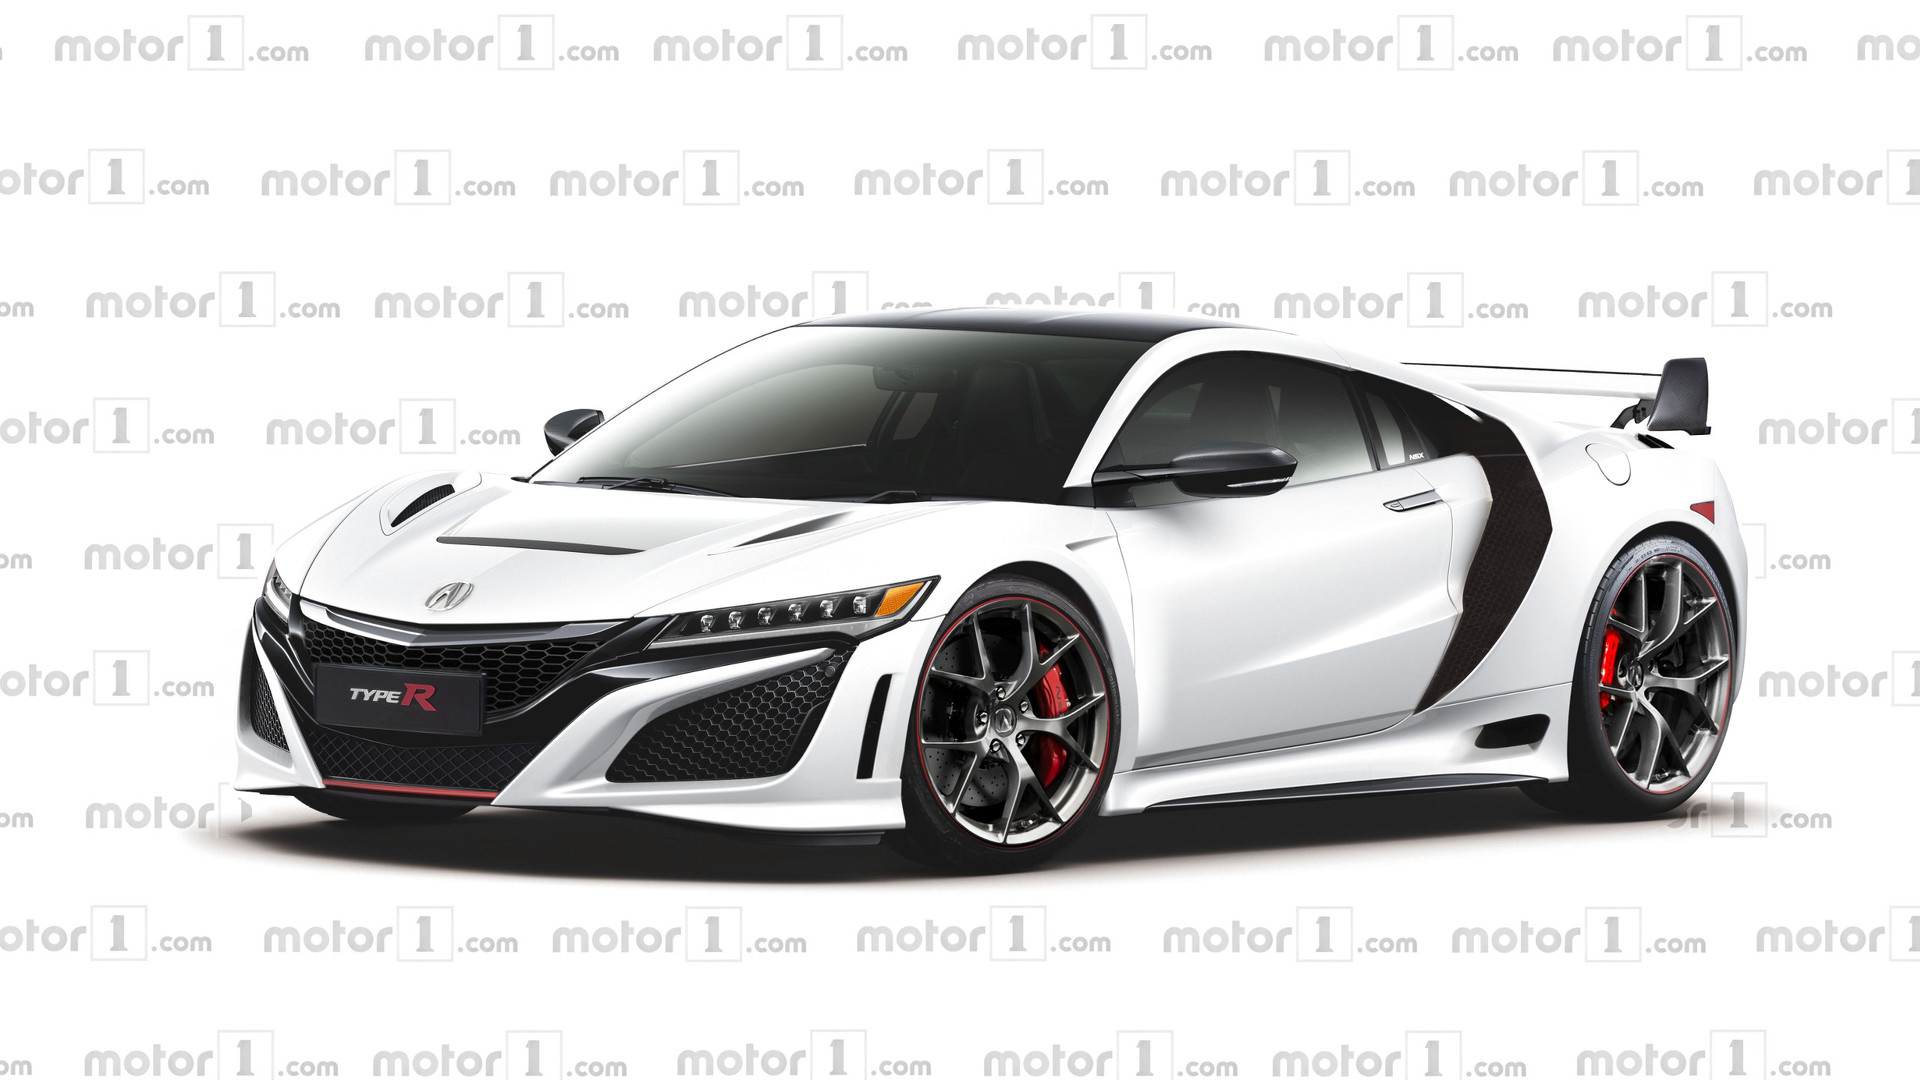 Acura Type R >> Acura Nsx Type R To Debut In October With 650 Hp 200k Price Update